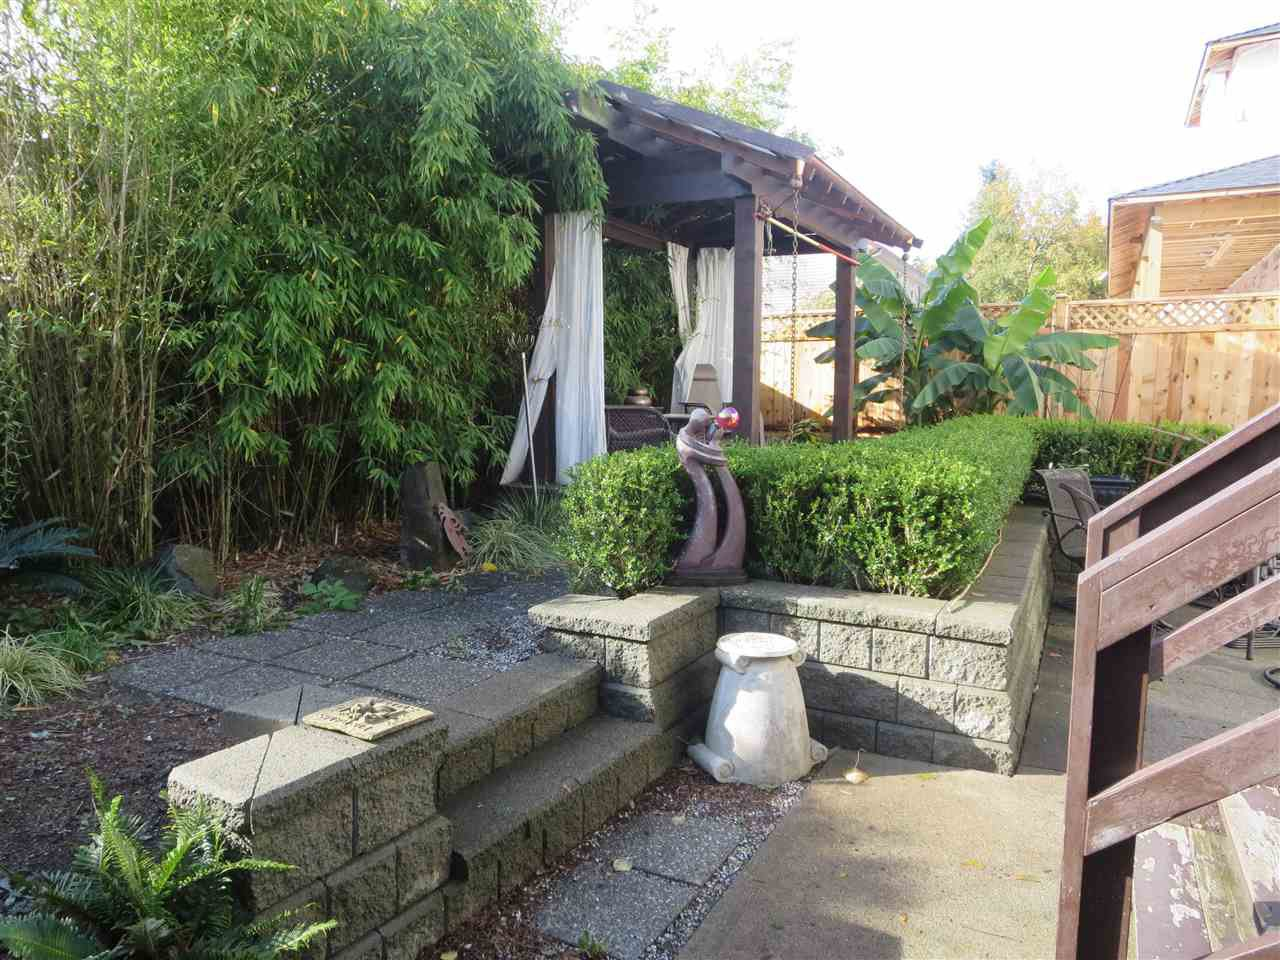 Photo 14: Photos: 19348 PARK Road in Pitt Meadows: Mid Meadows House for sale : MLS®# R2118610